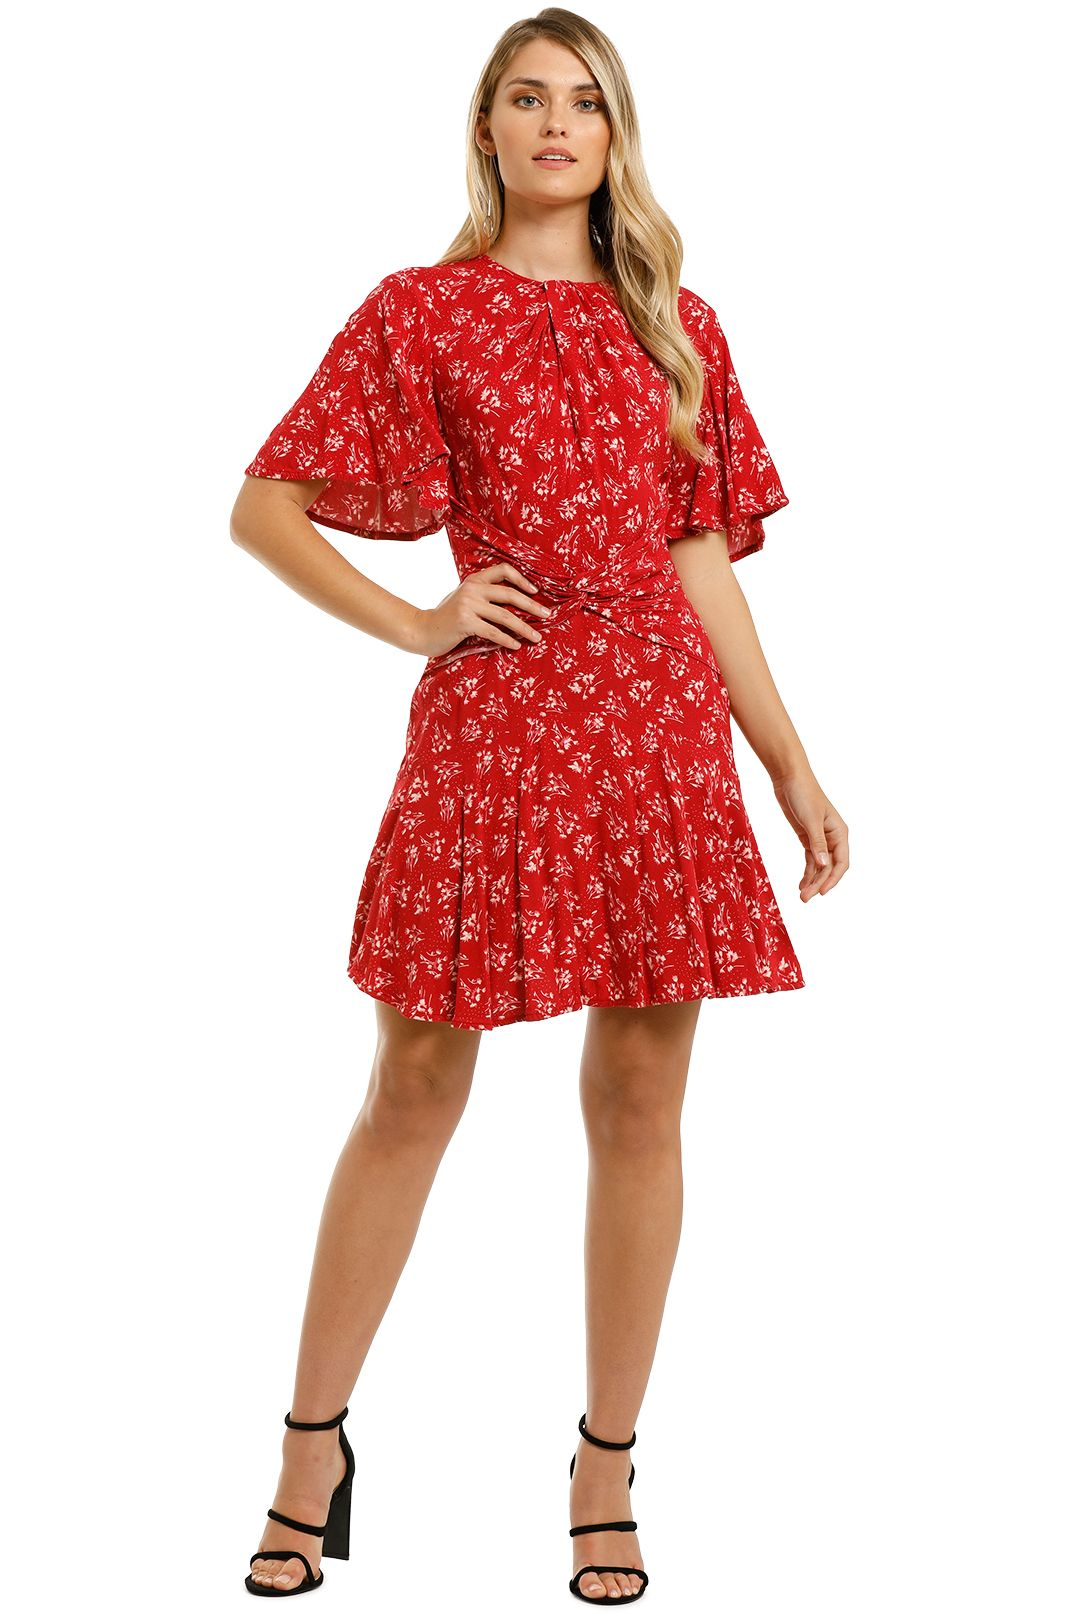 Lover-Mimosa-Mini-Dress-Red-Front